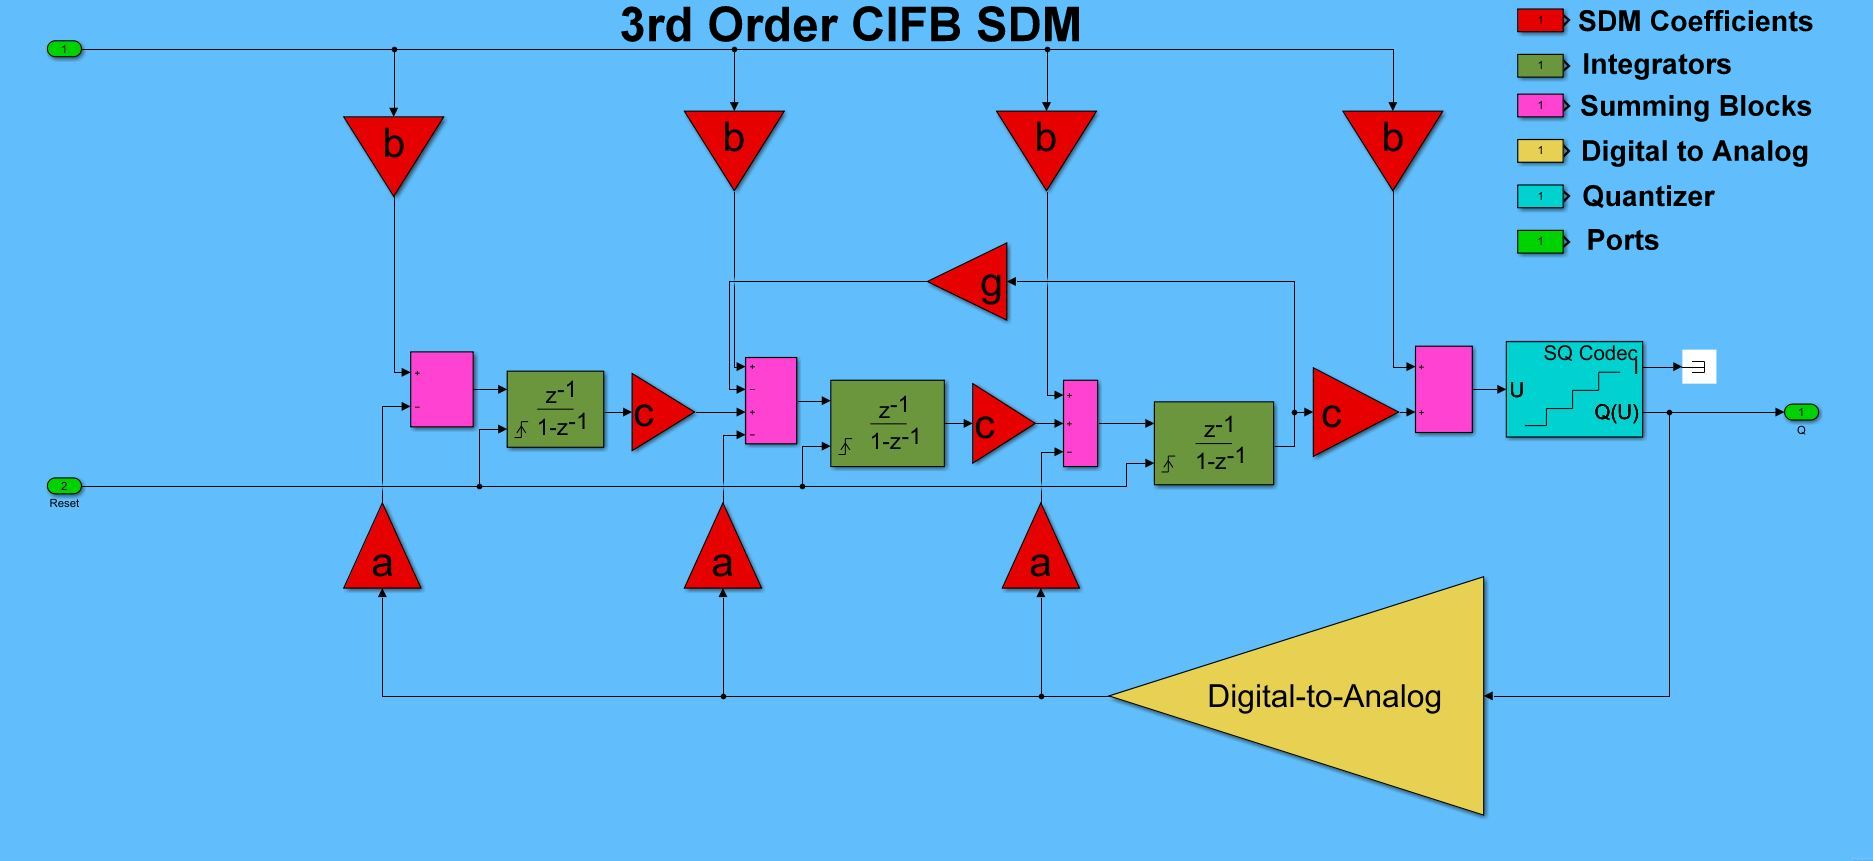 SDM Data Converter Architecture Considerations for Custom IC Designs